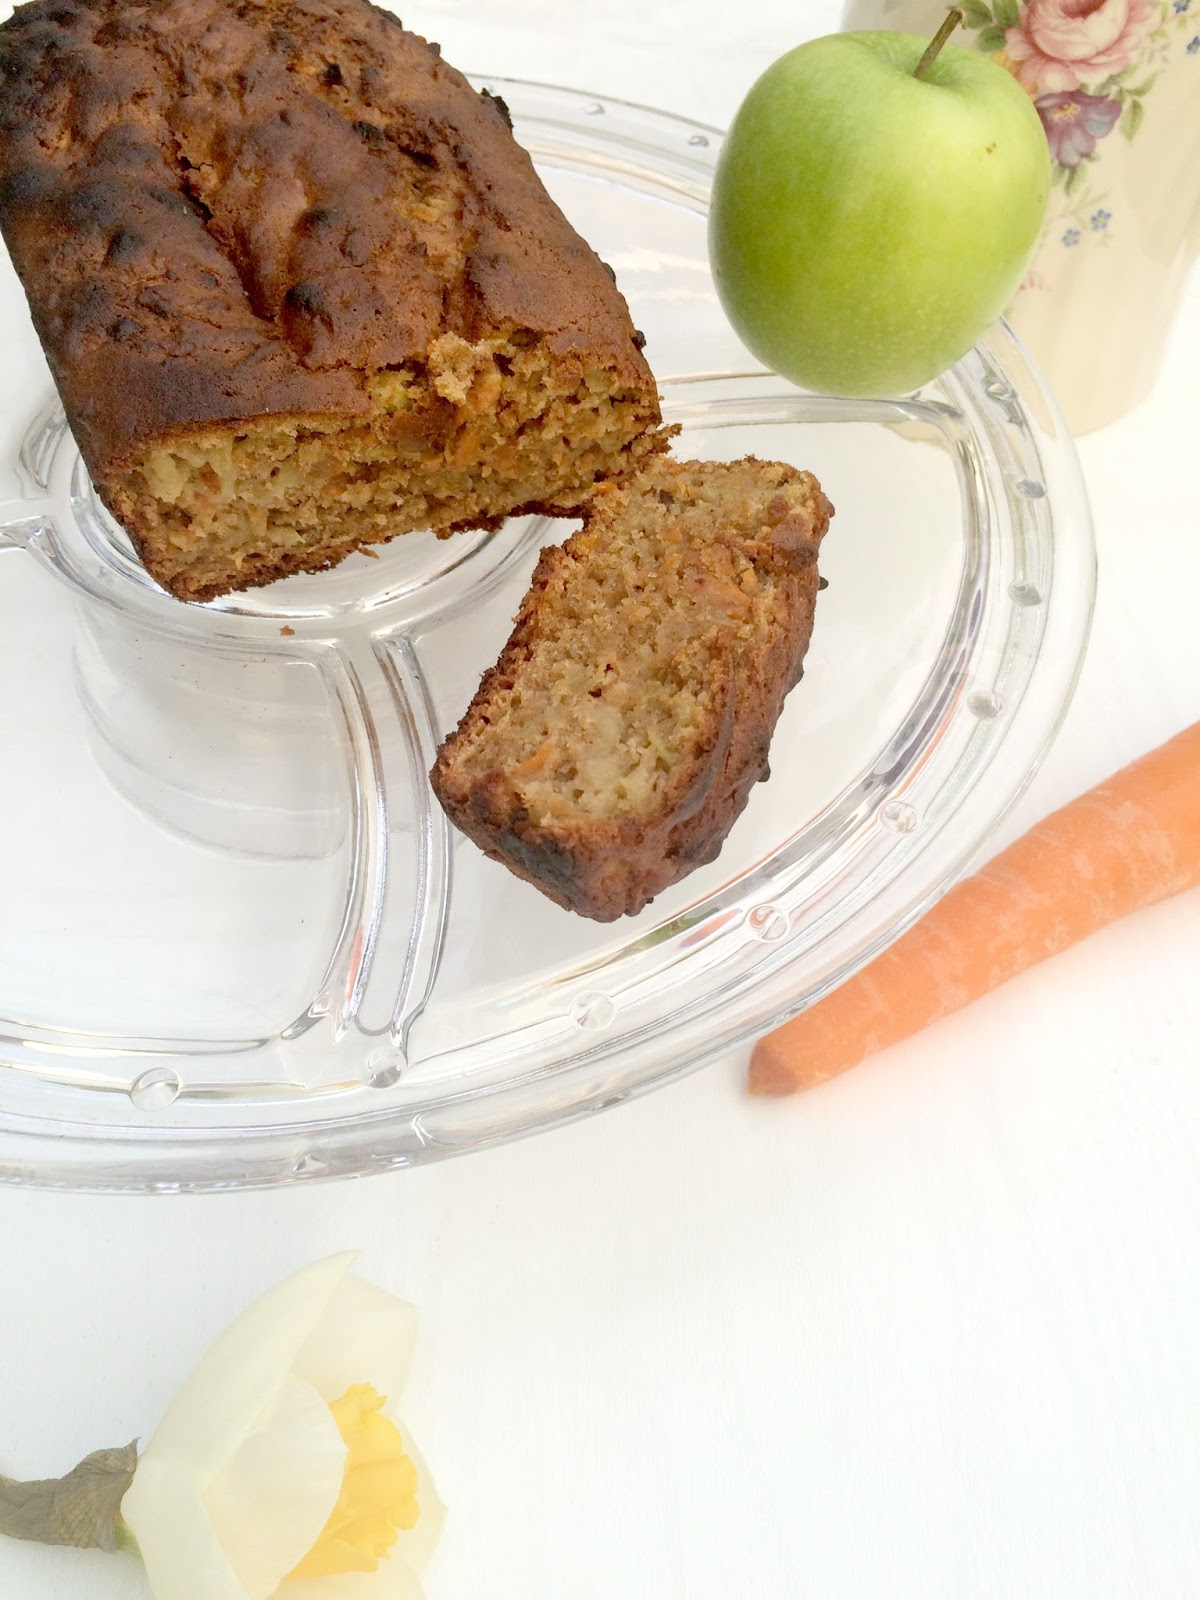 Recipe for carrot & apple loaf